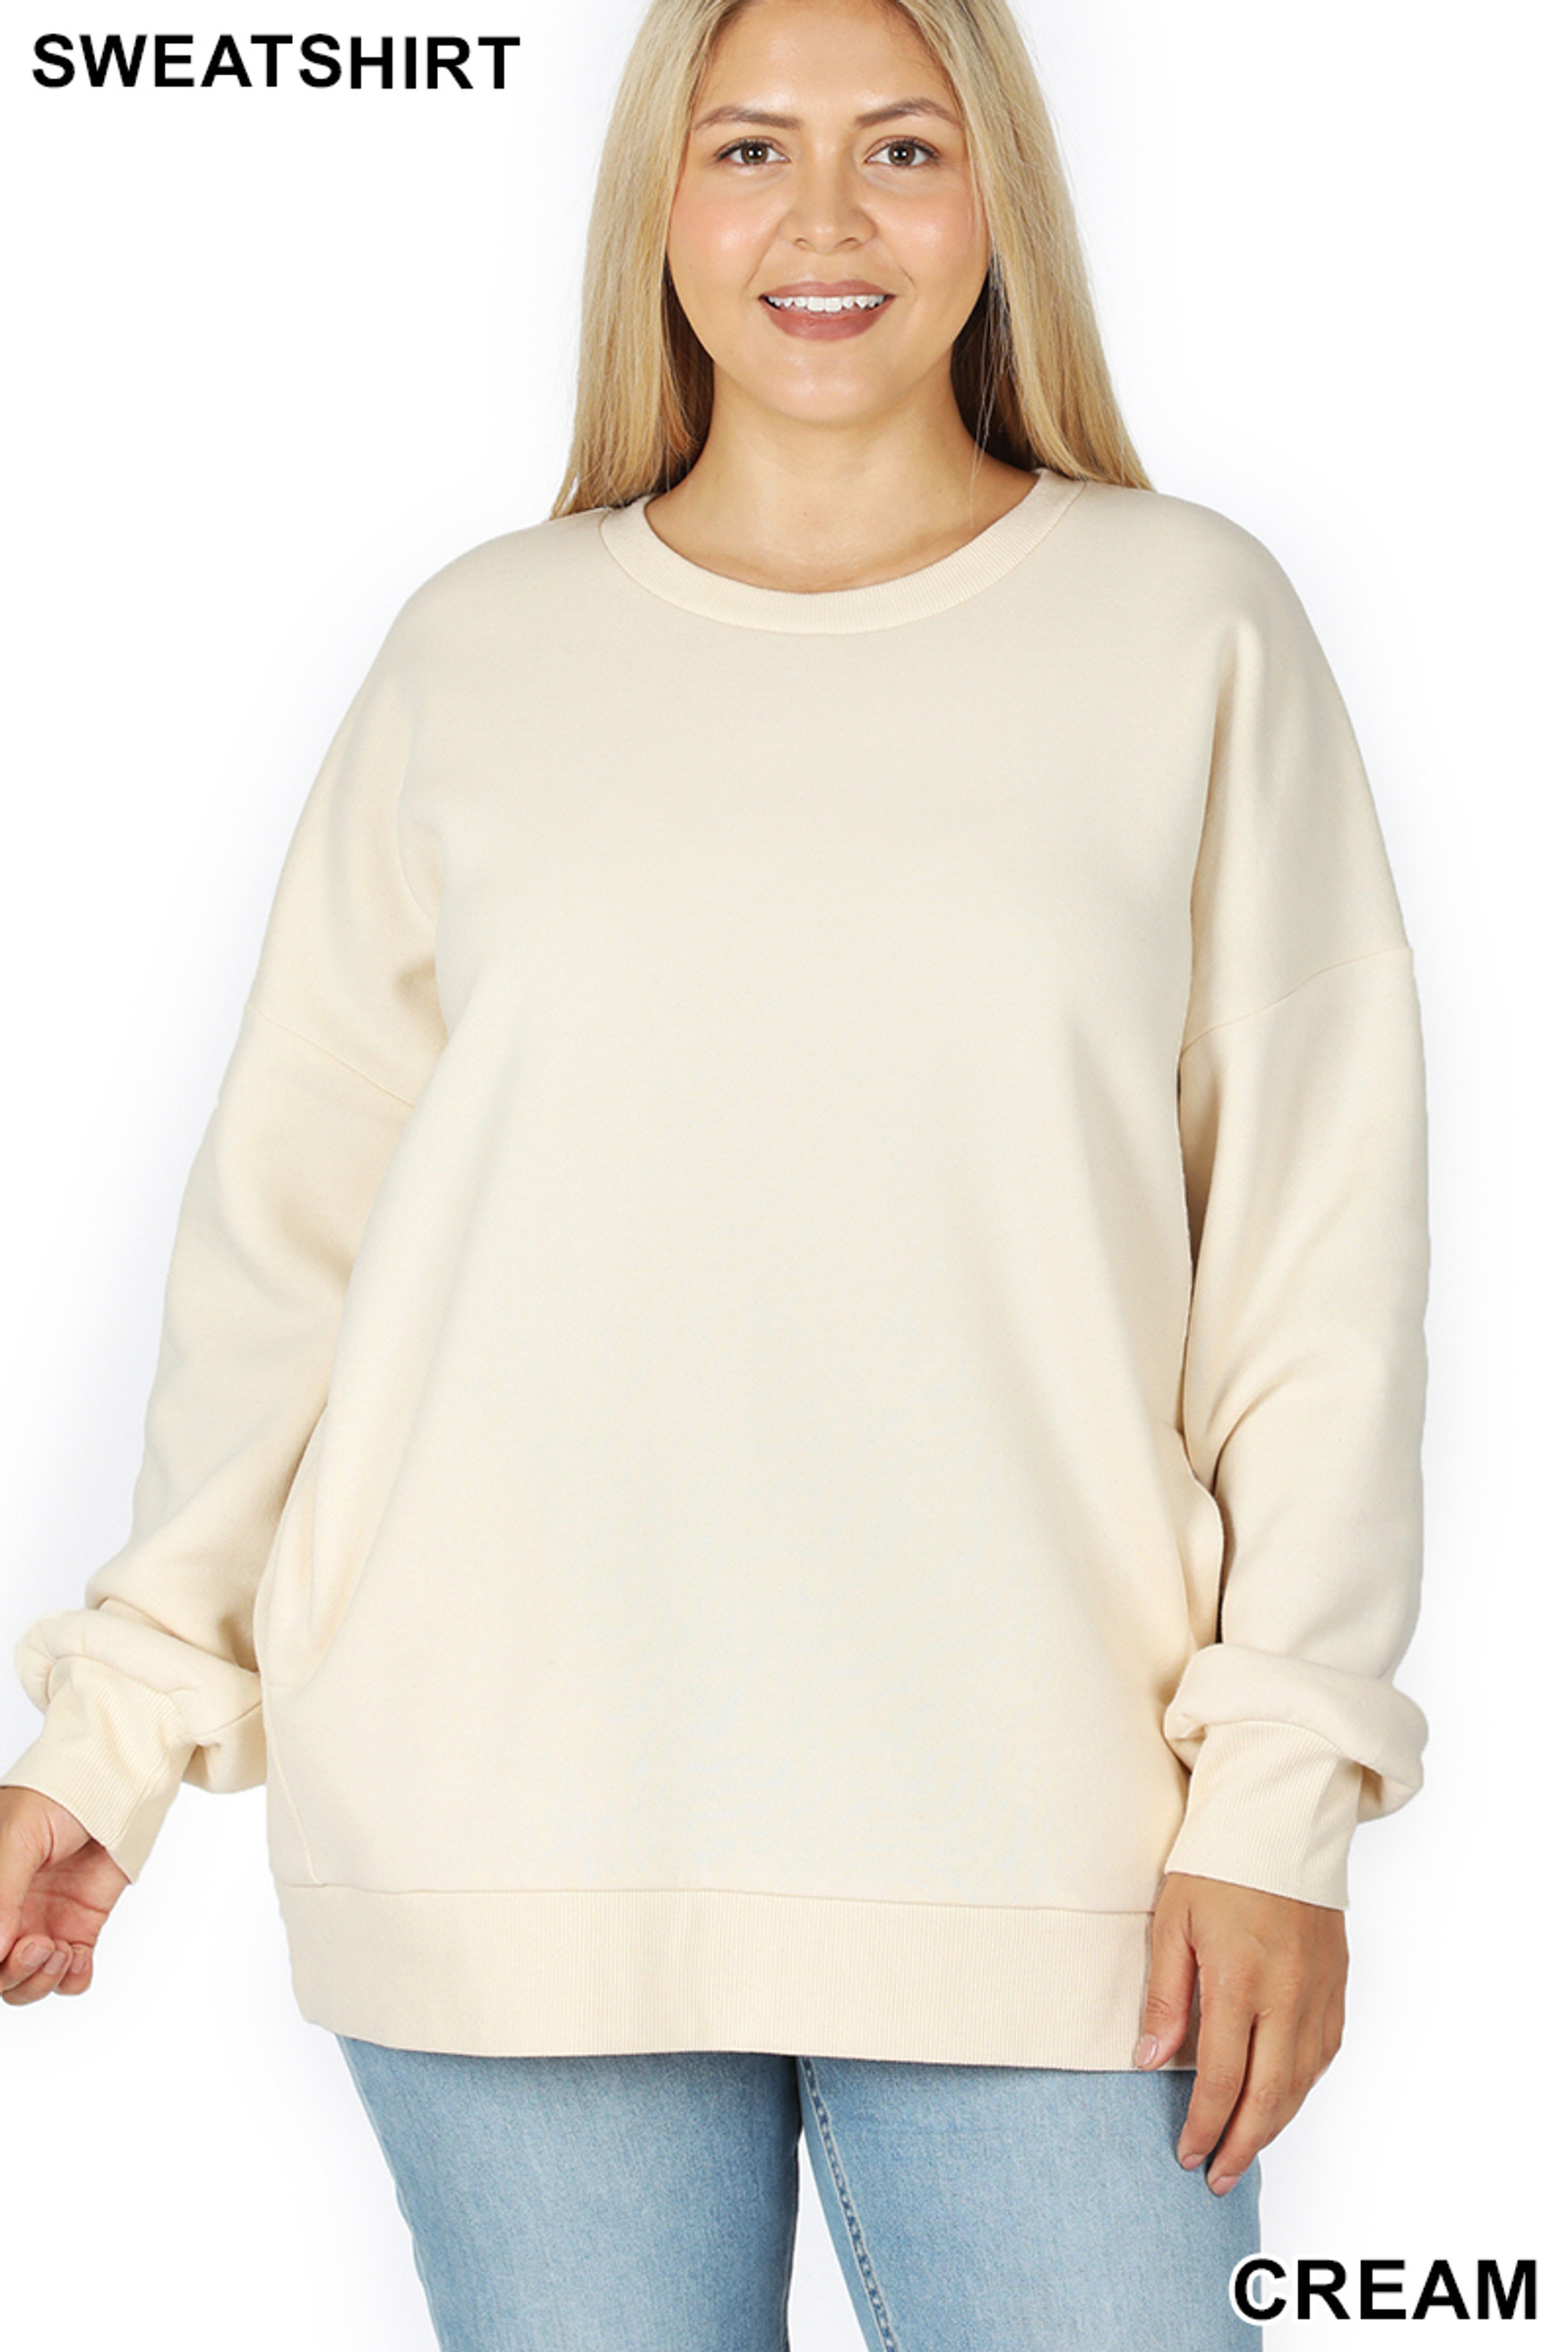 Front image of Cream Cotton Round Crew Neck Plus Size Sweatshirt with Side Pockets